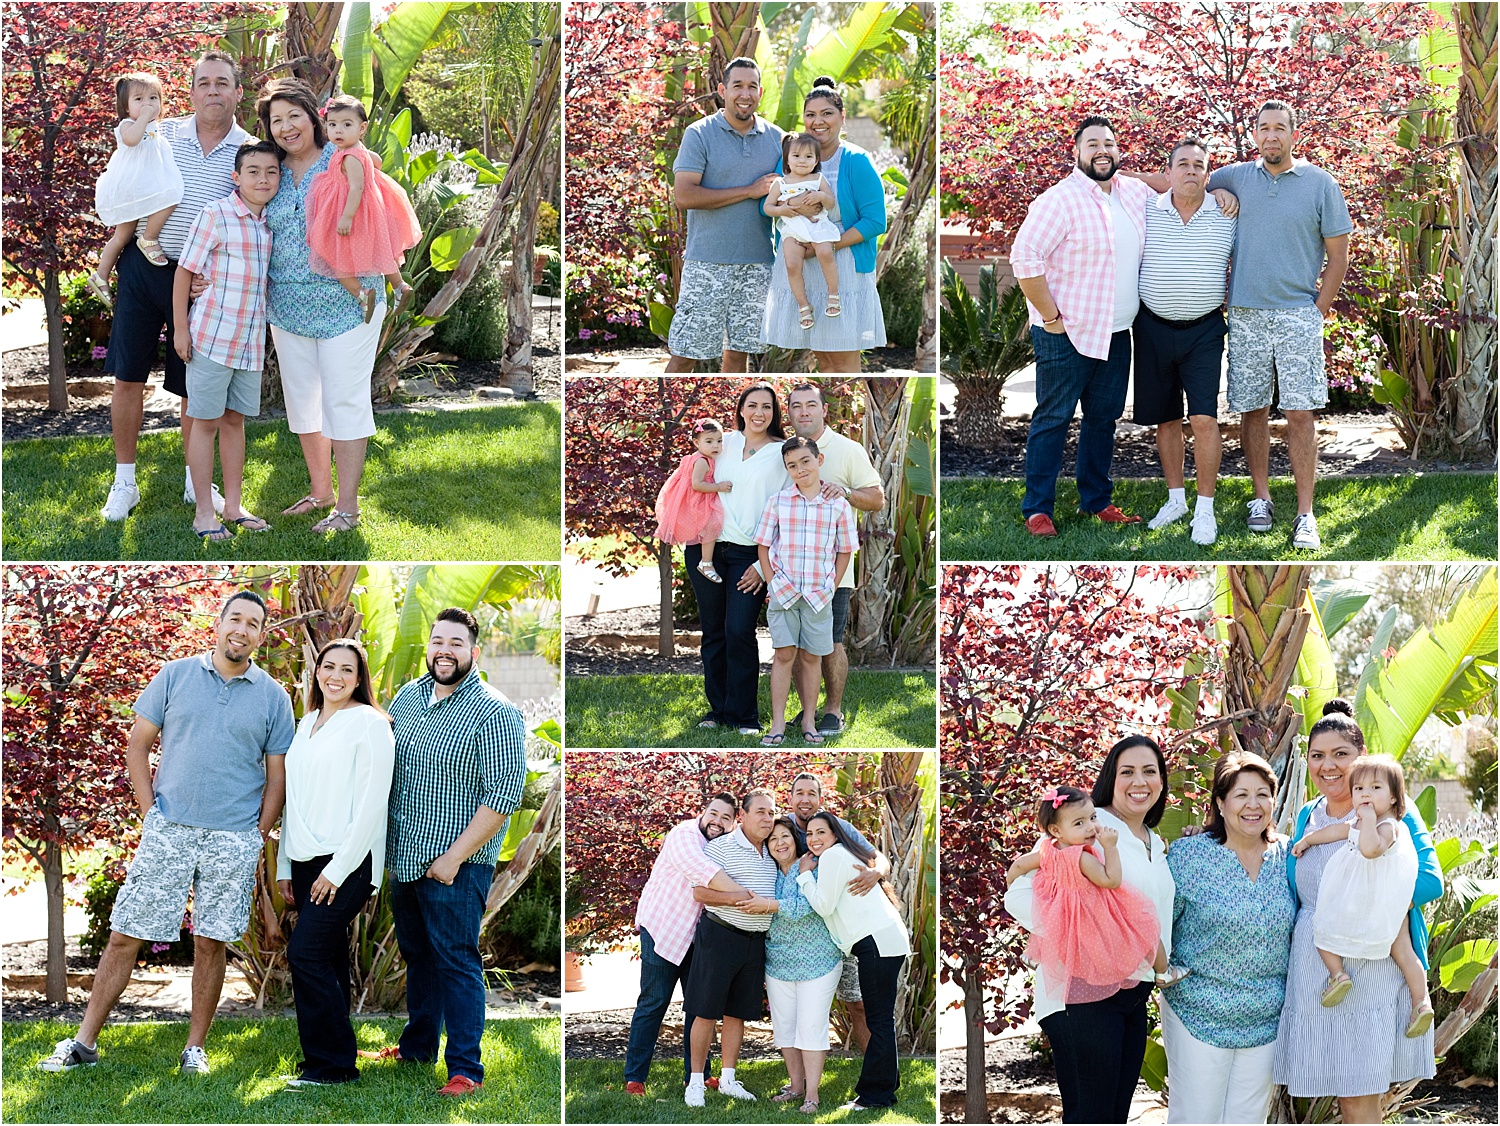 Tips for Posing Large Families and Groups - different group posing options